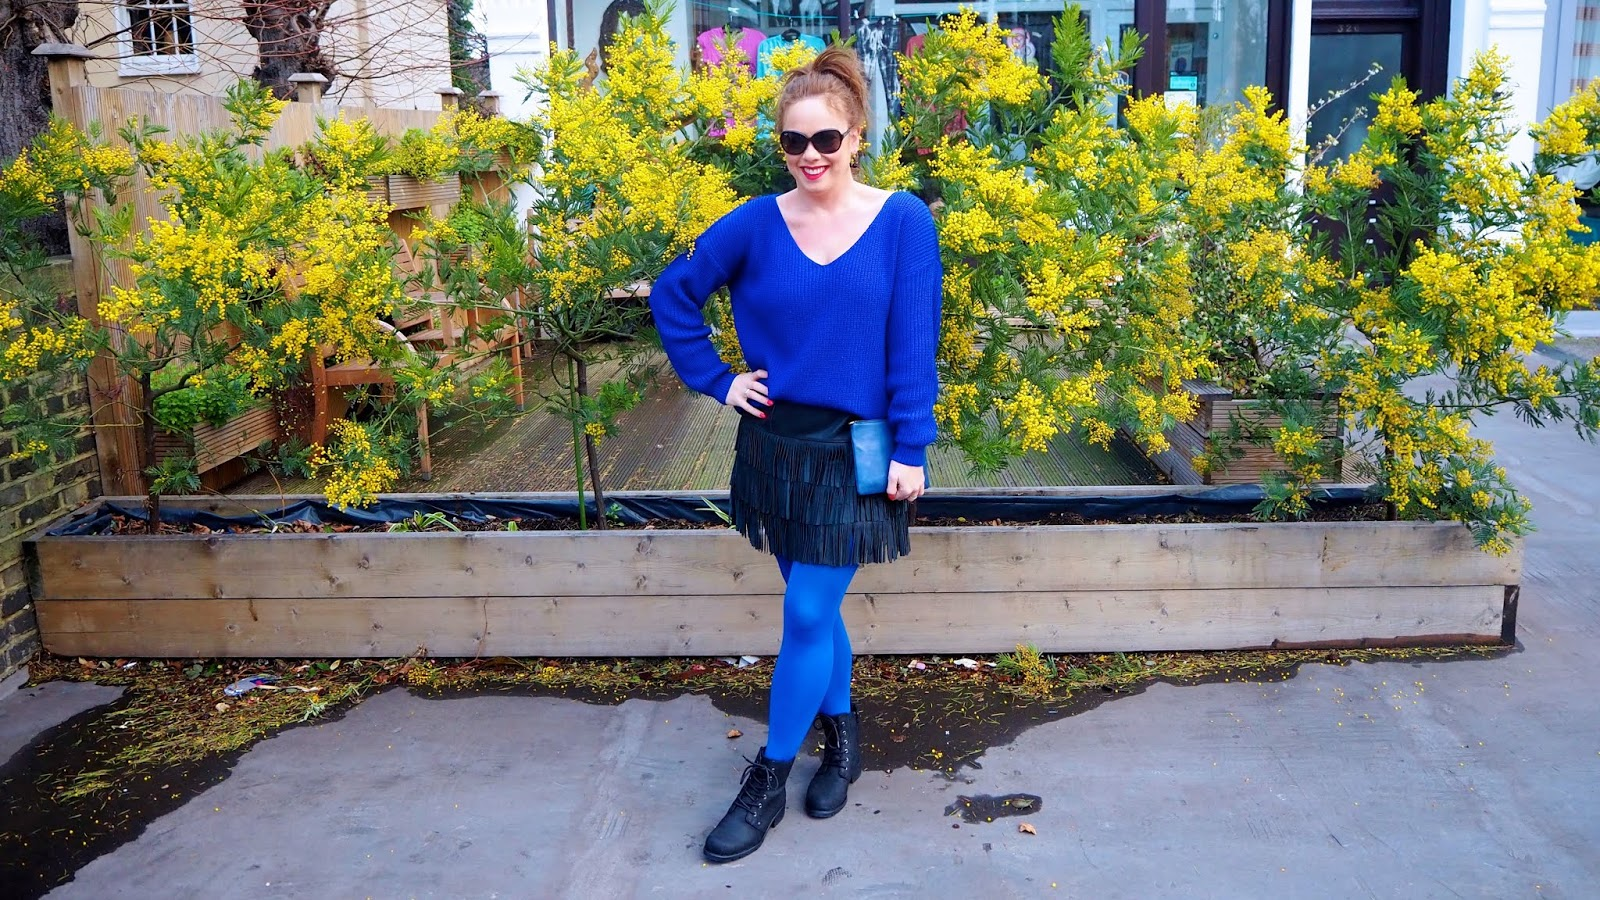 royal blue sweater and tights, black leather fringe skirt, blue leather clutch, black biker boots